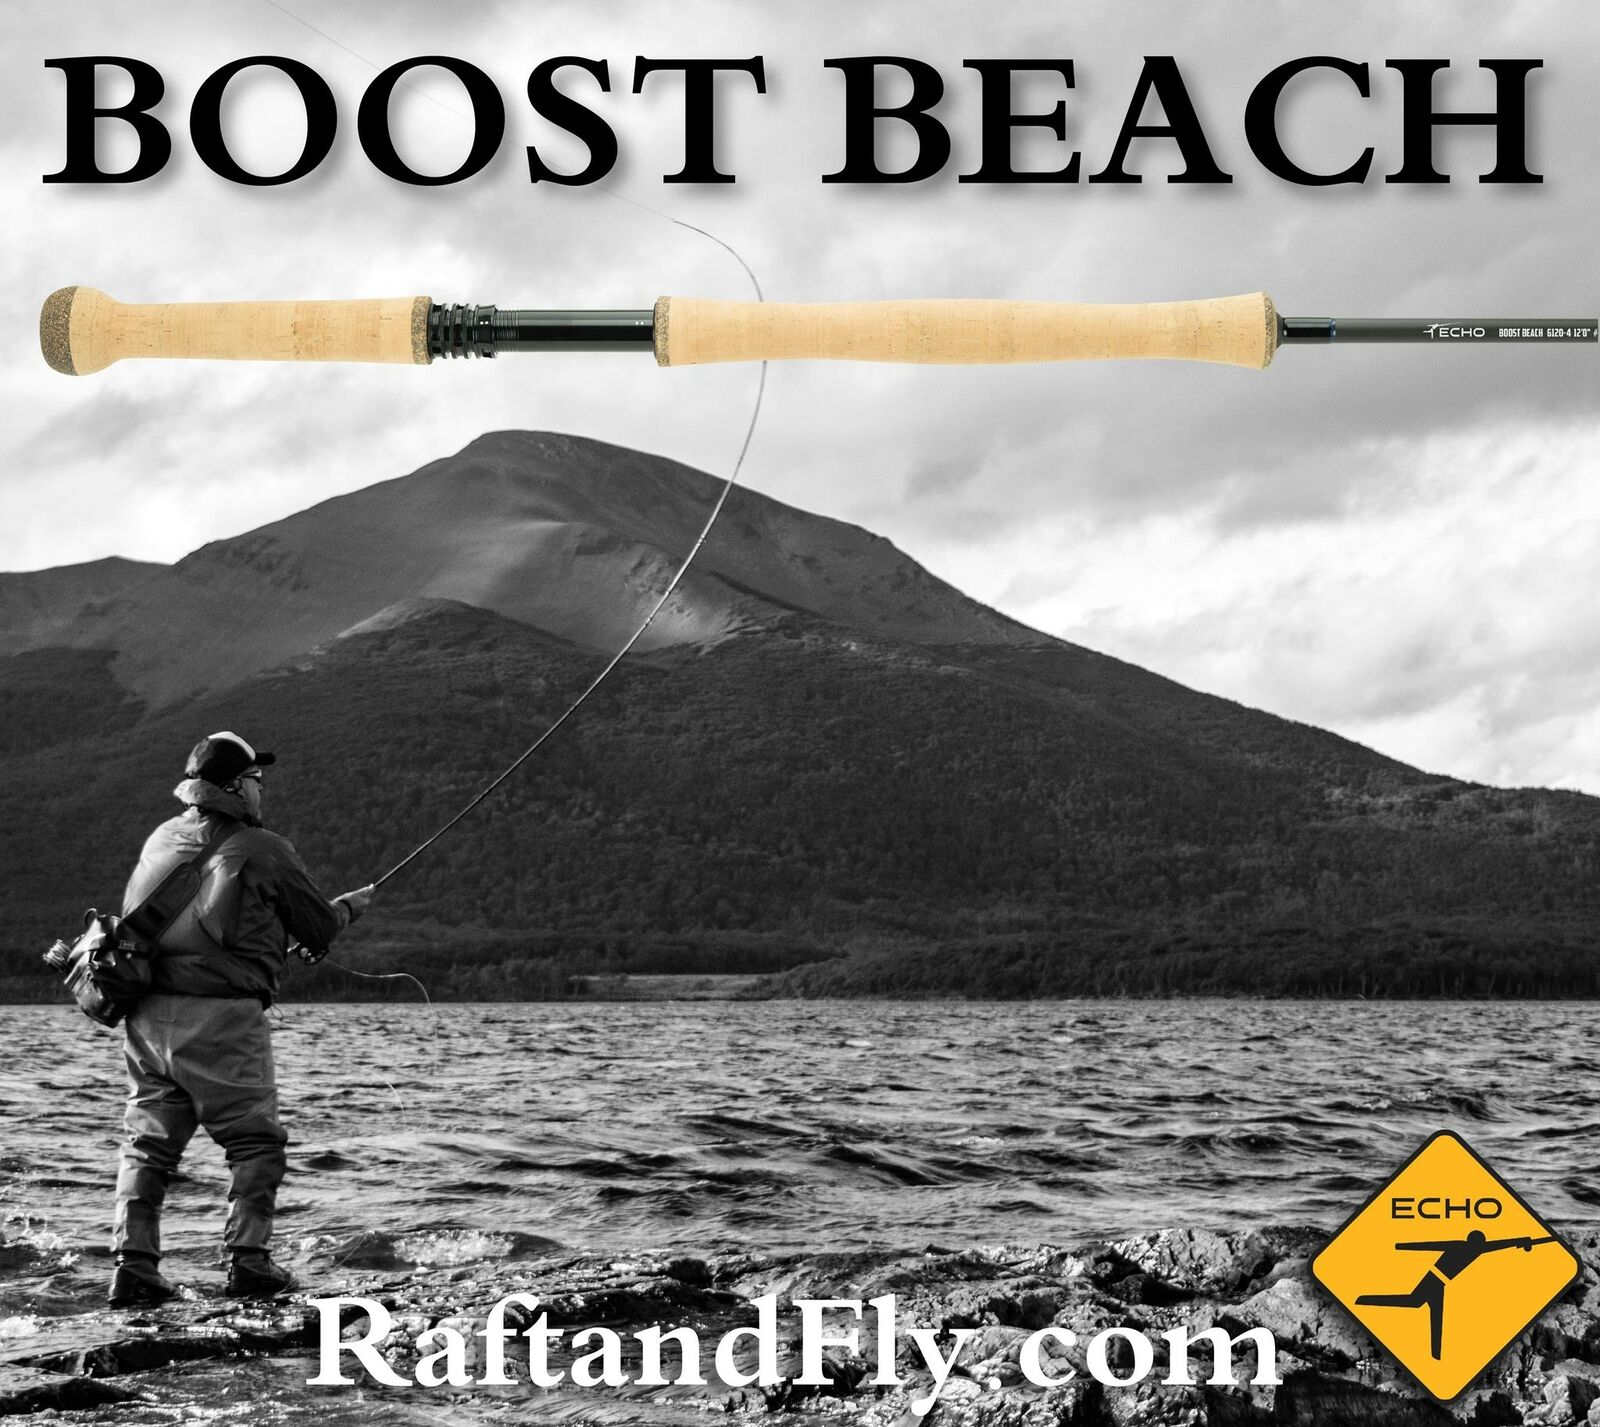 Echo Boost Beach 8wt 12'2  Surf Fly Rod - Lifetime Warranty - FREE SHIPPING